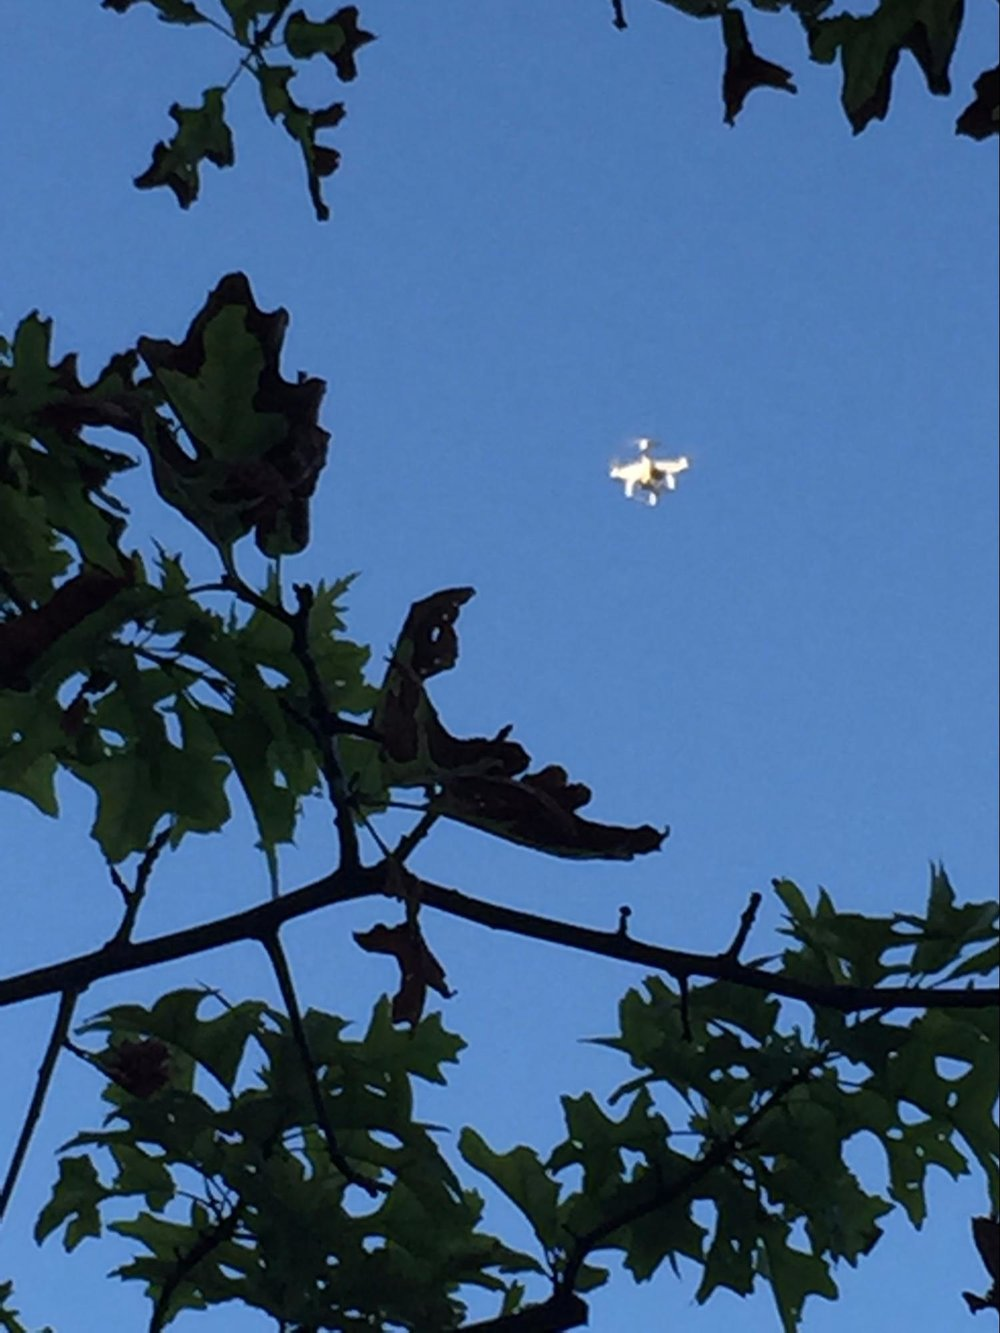 What is believed to be a White Plains, NY, police drone being used at a White Plains rally in July, 2016.  Photo by Sue McAnanama.